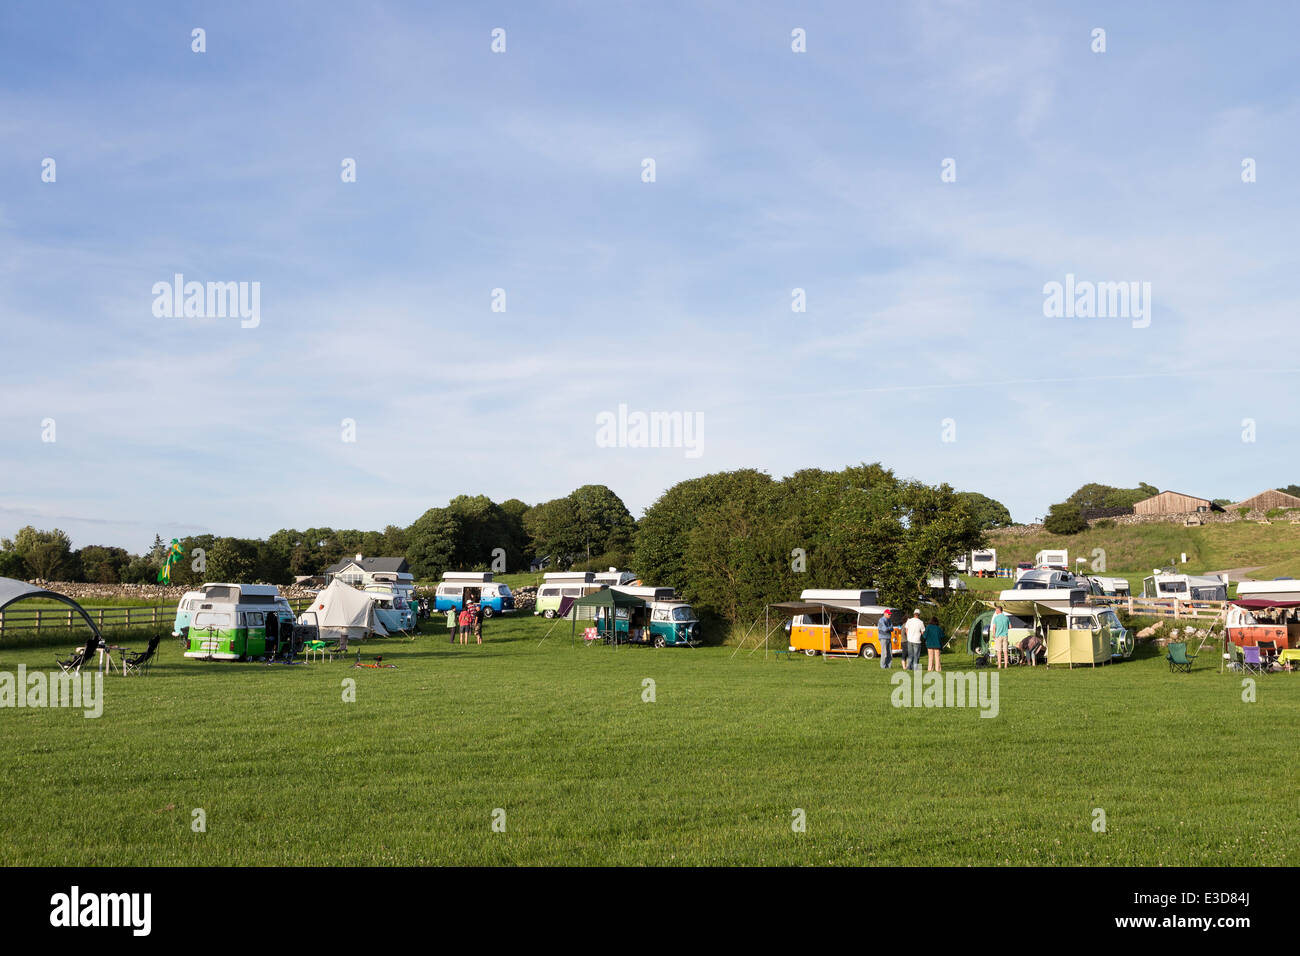 Pop Top Brazilian VW Camper Vans at Gibralter Farm Campsite Silverdale Lancashire England UK - Stock Image